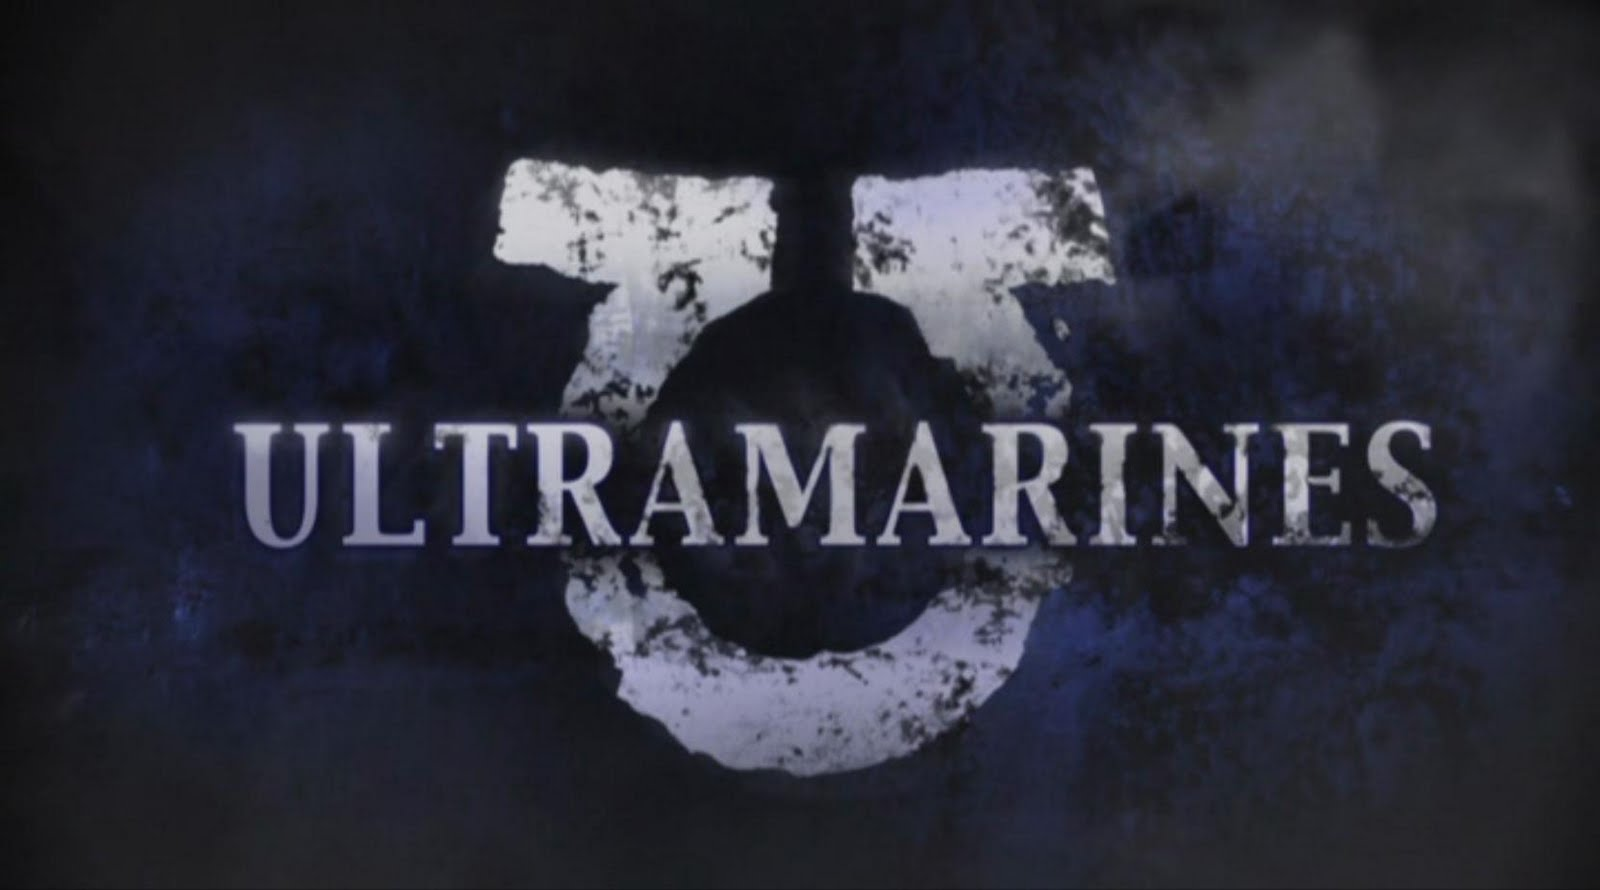 jonathon wisnoski: ultramarines: a warhammer 40k movie (2010)